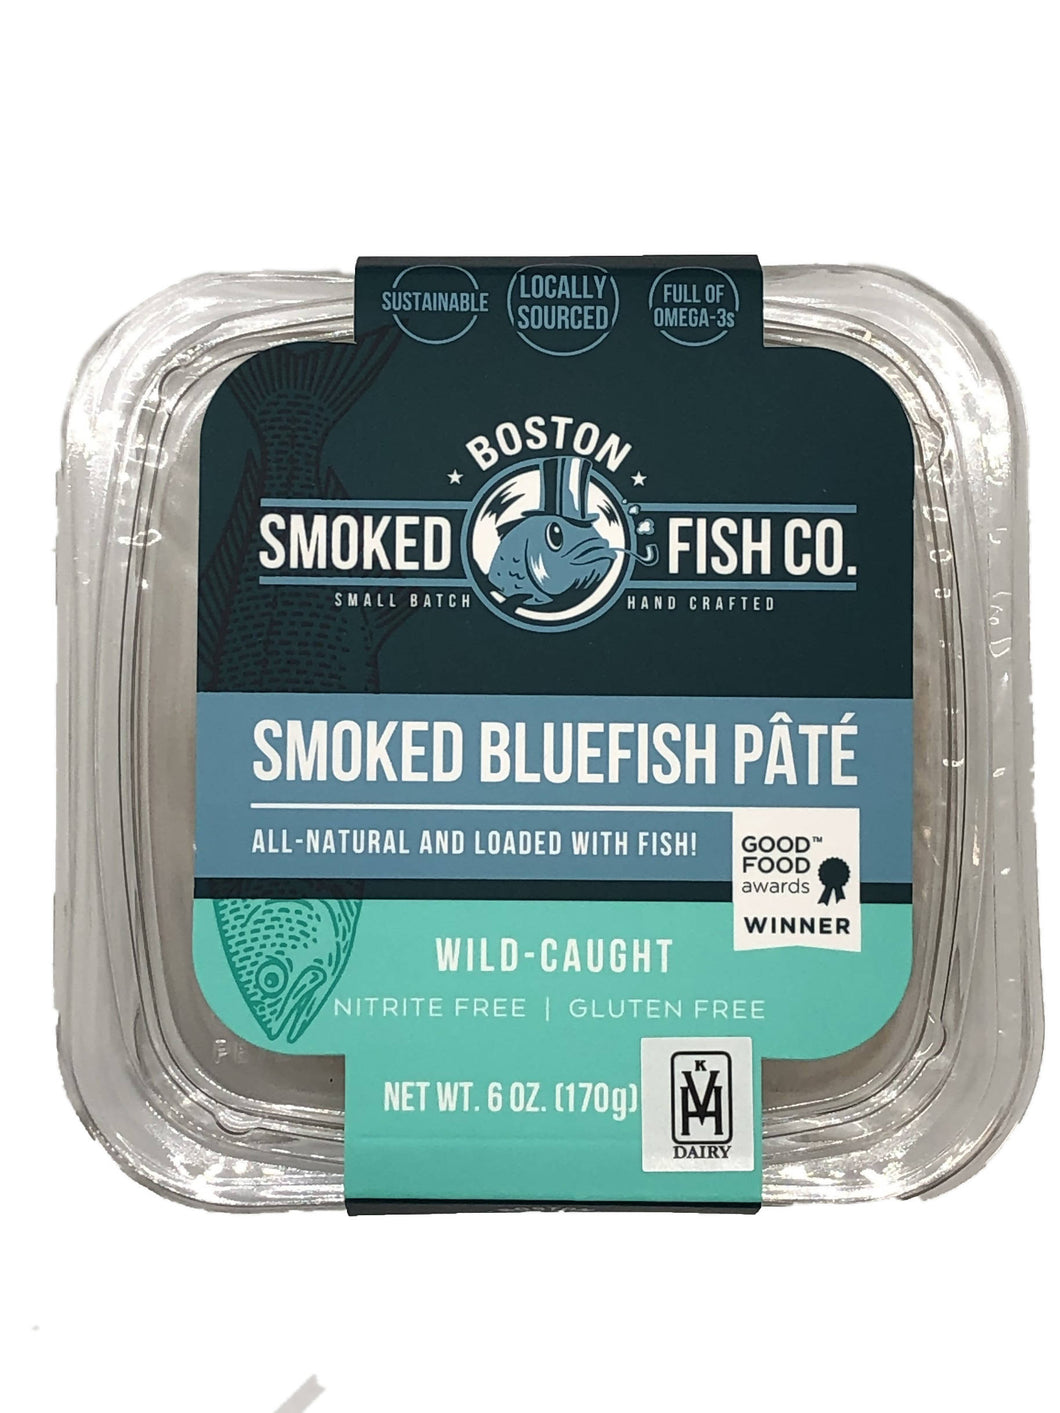 Smoked Bluefish Pâté - 12 x 6 oz